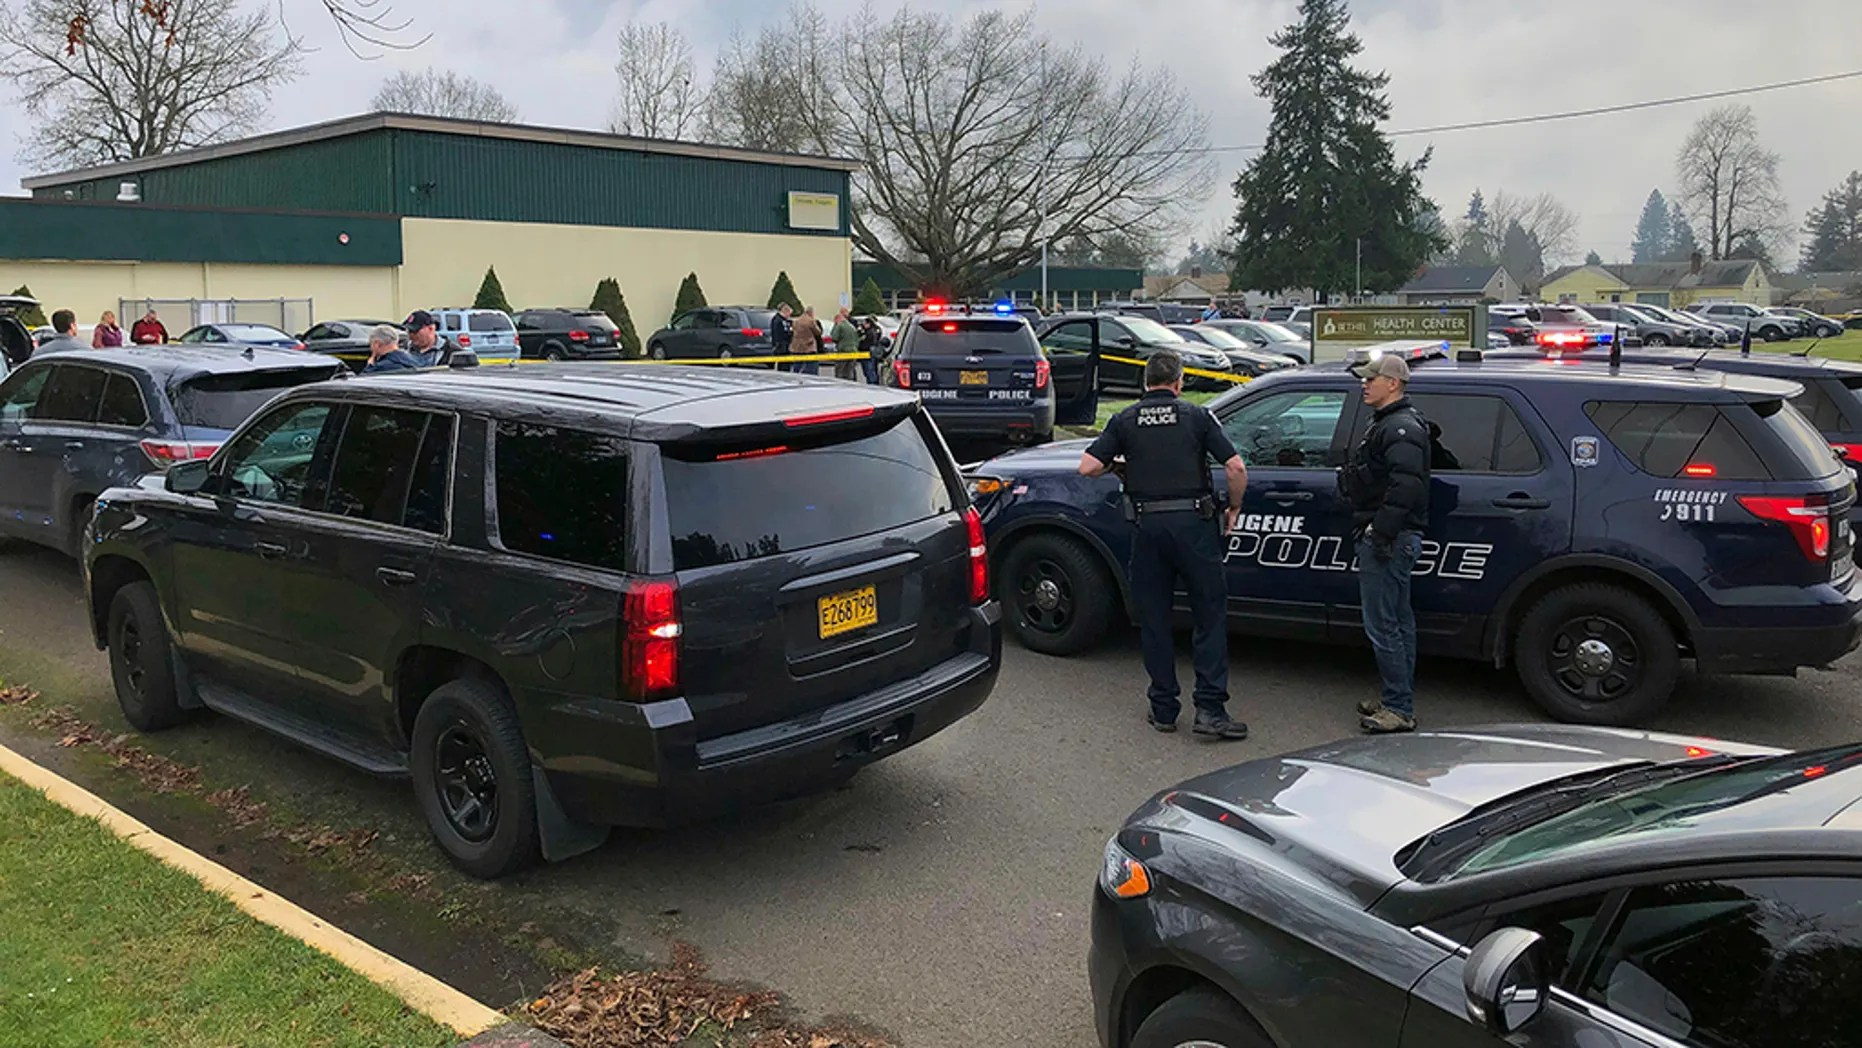 Police officers work the scene where a suspect was shot at a Cascade Middle School in Eugene, Oregon, on Friday. (Chris Pietsch/The Register-Guard via AP)